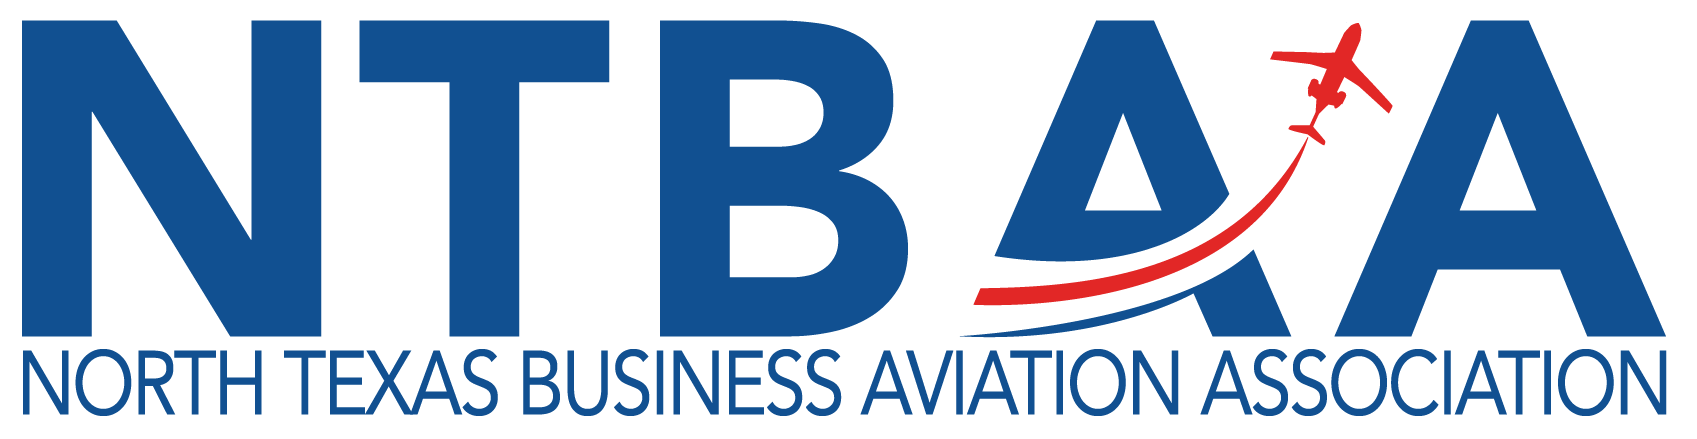 North Texas Business Aviation Association - Call for Speakers